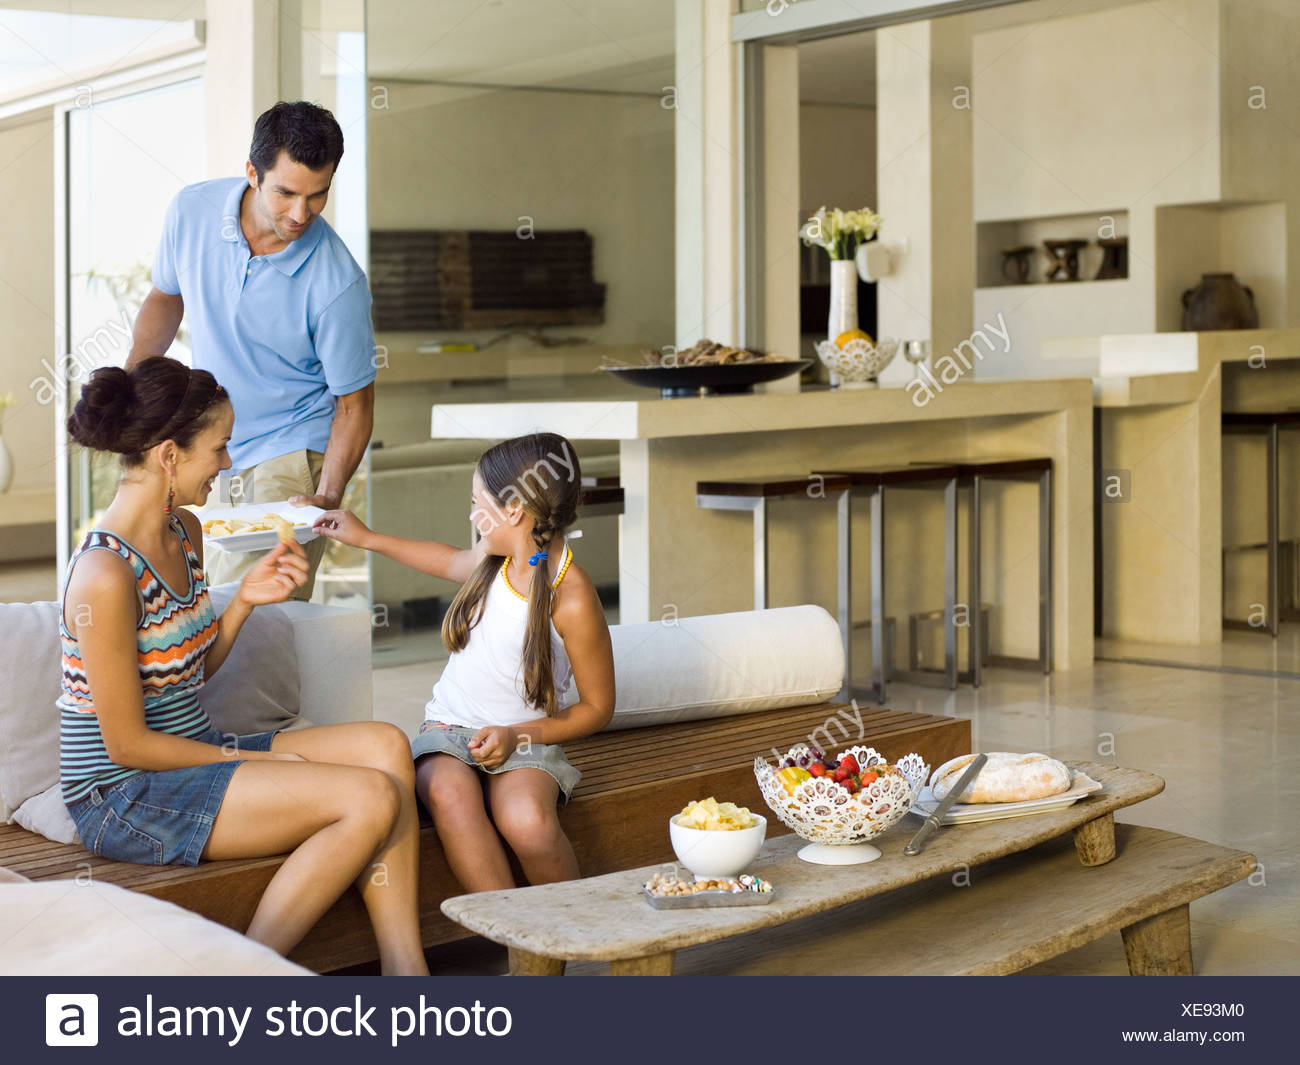 Man serving chips to his wife and daughter - Stock Image